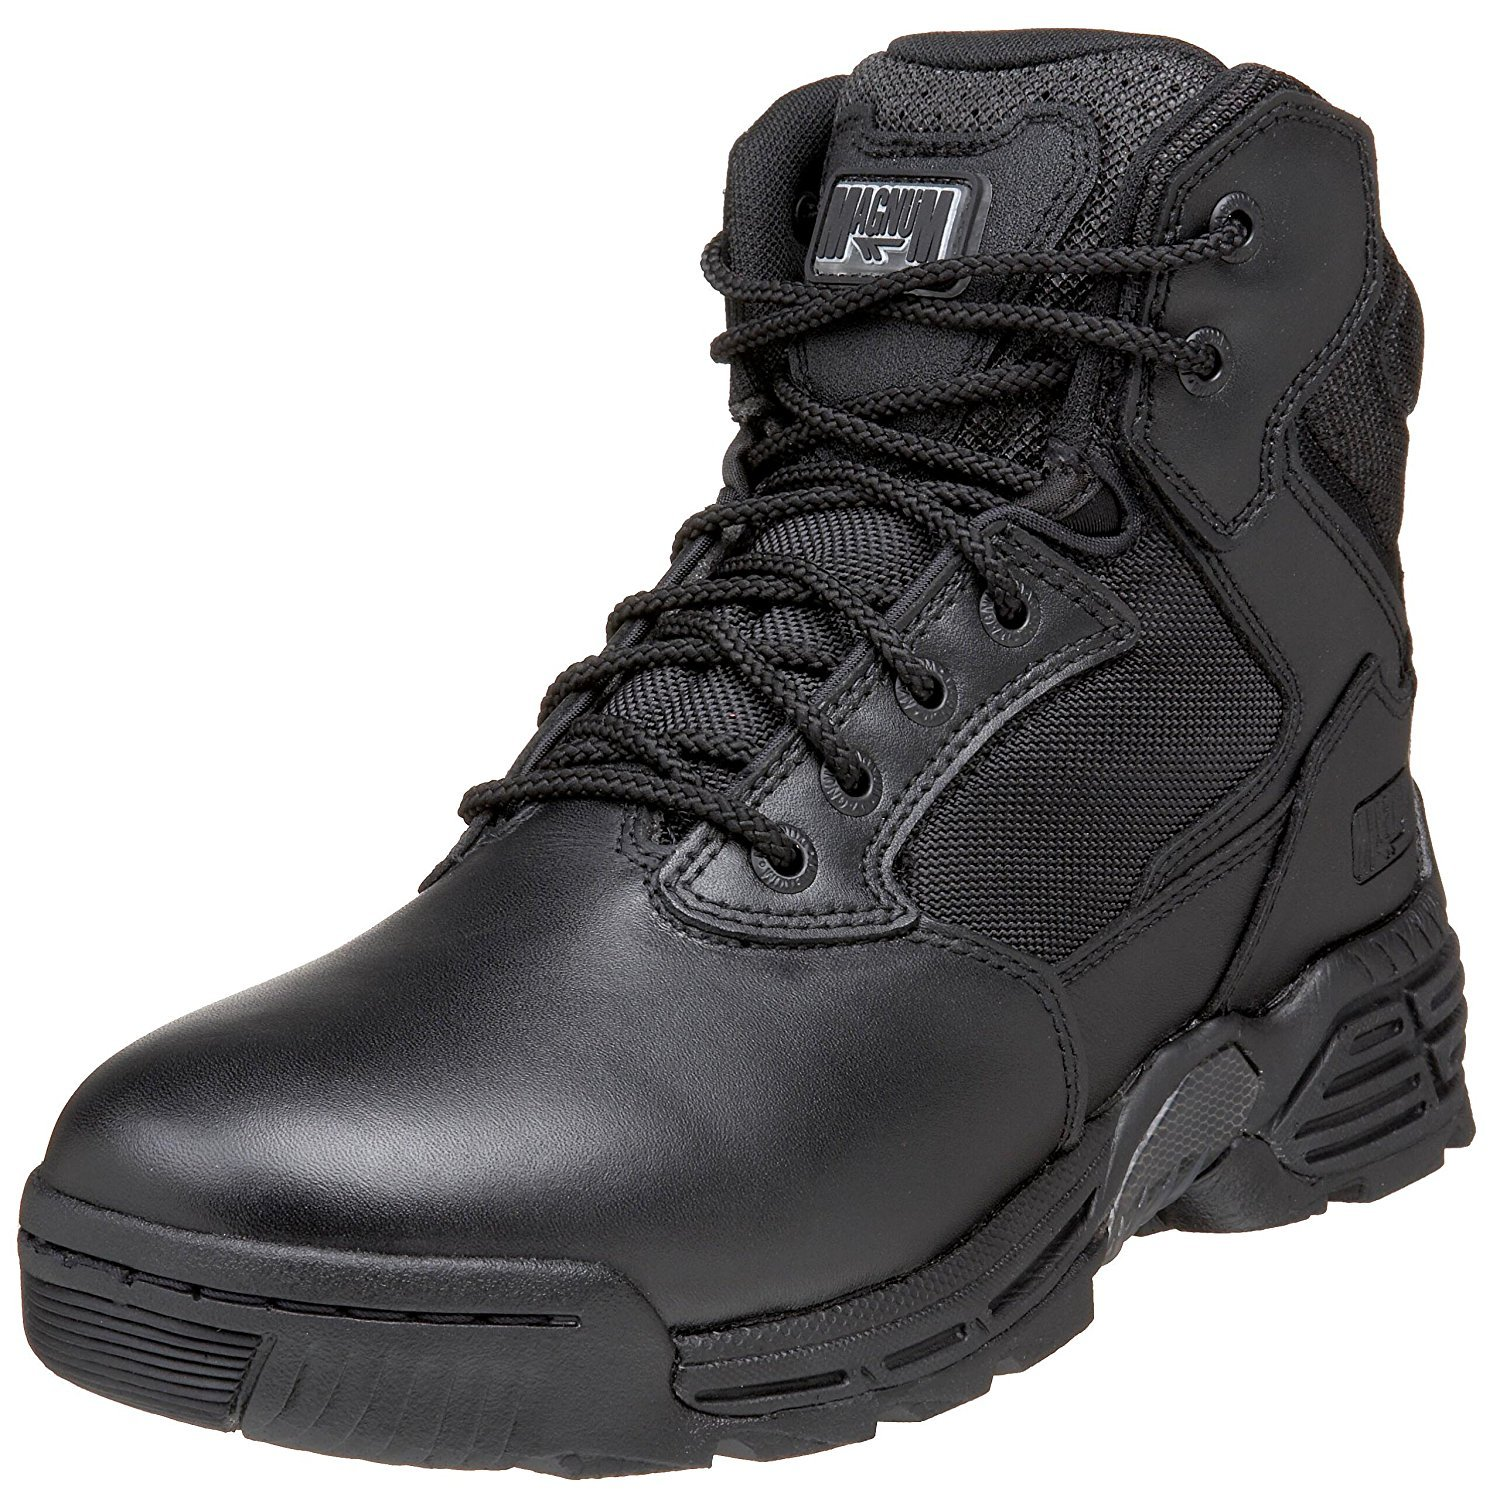 Magnum Women's Stealth Force 6.0 Boot,Black, 7.5 M US